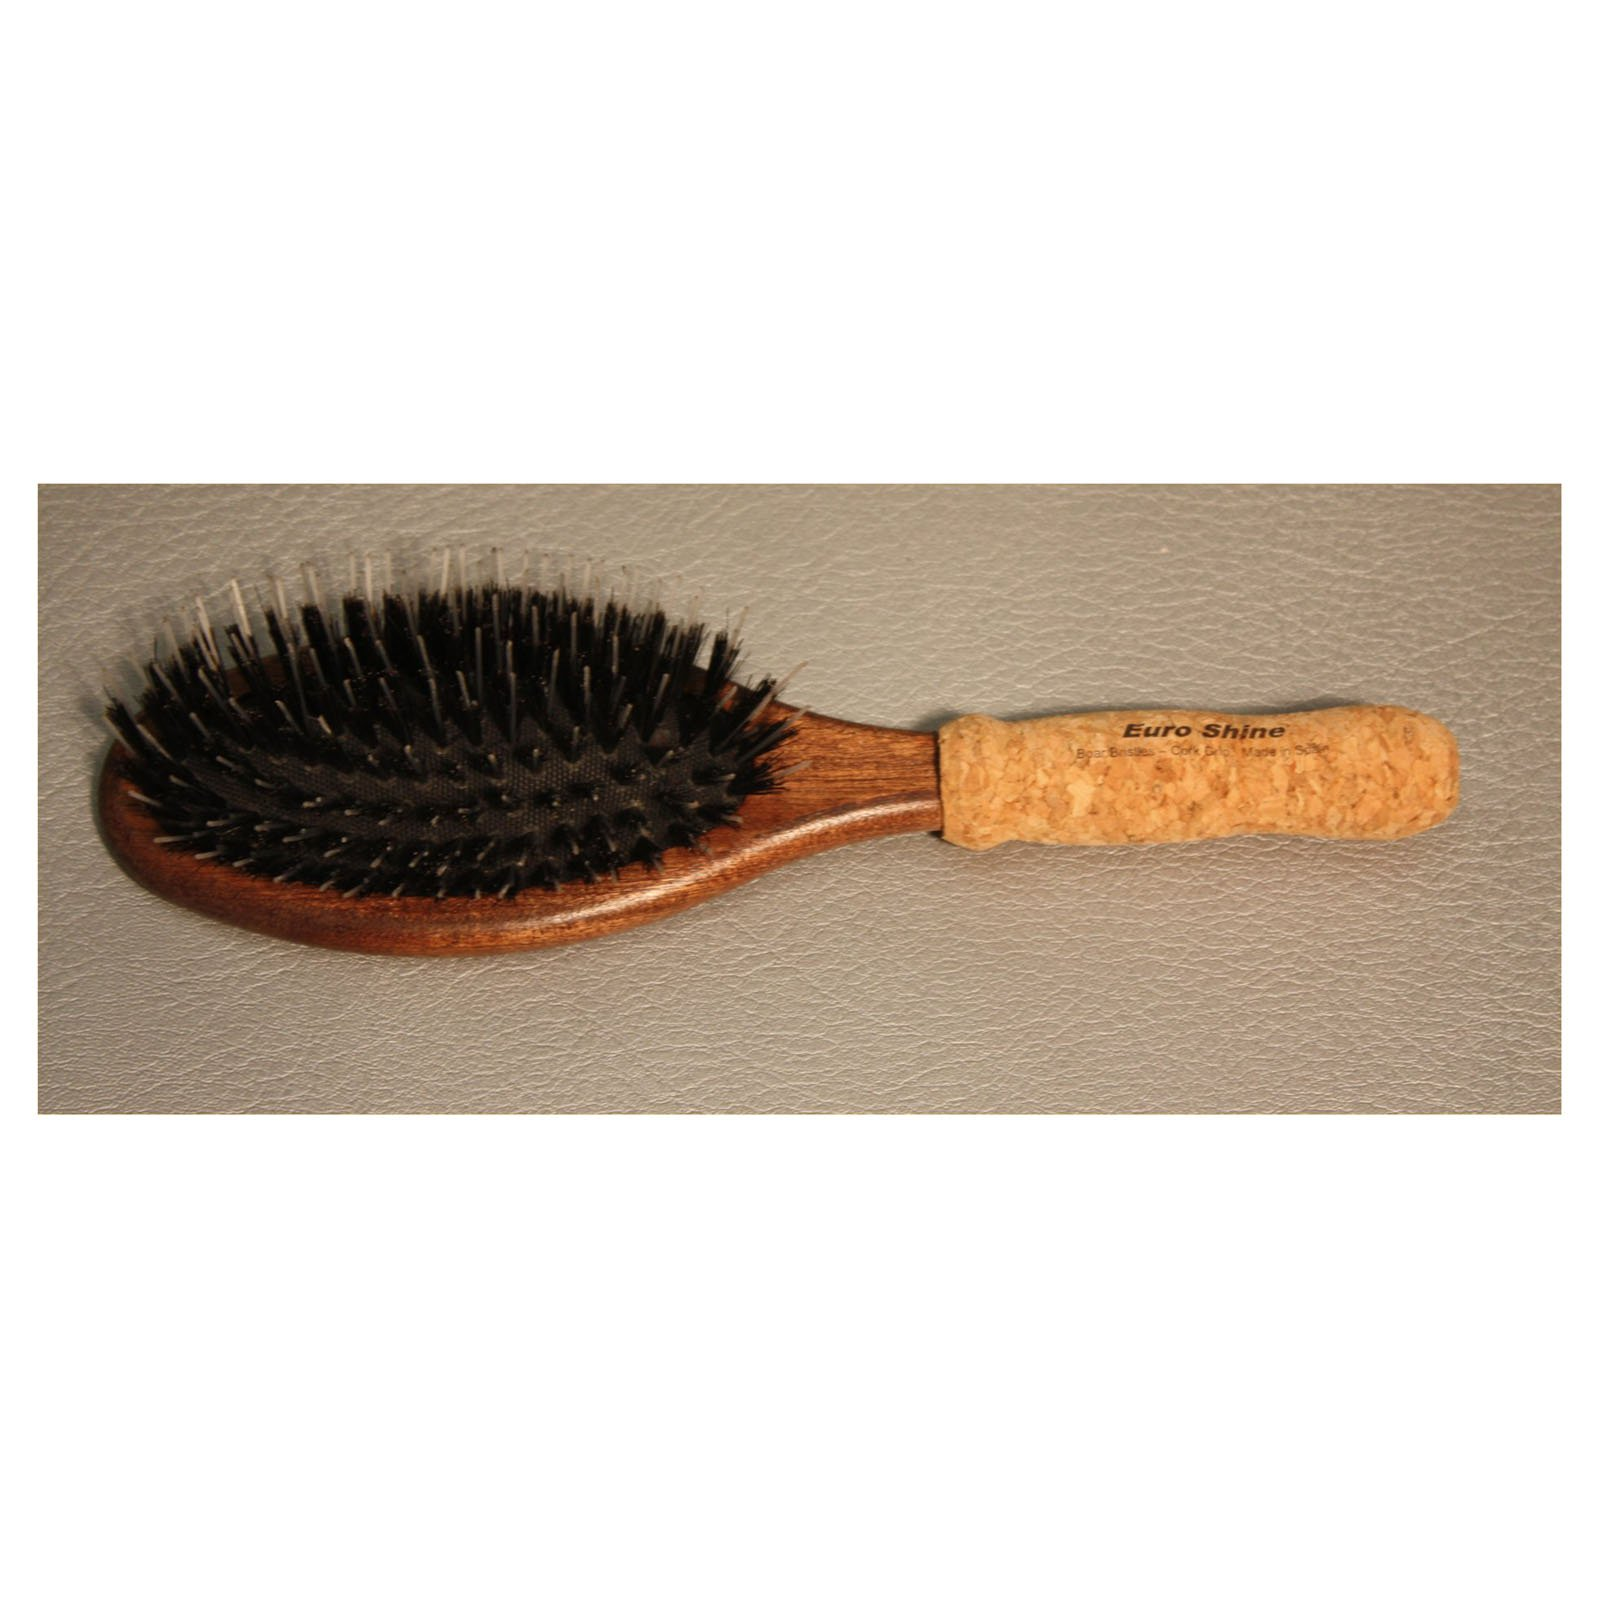 EuroShine Large Oval Cork Grip Boar Bristle Brush